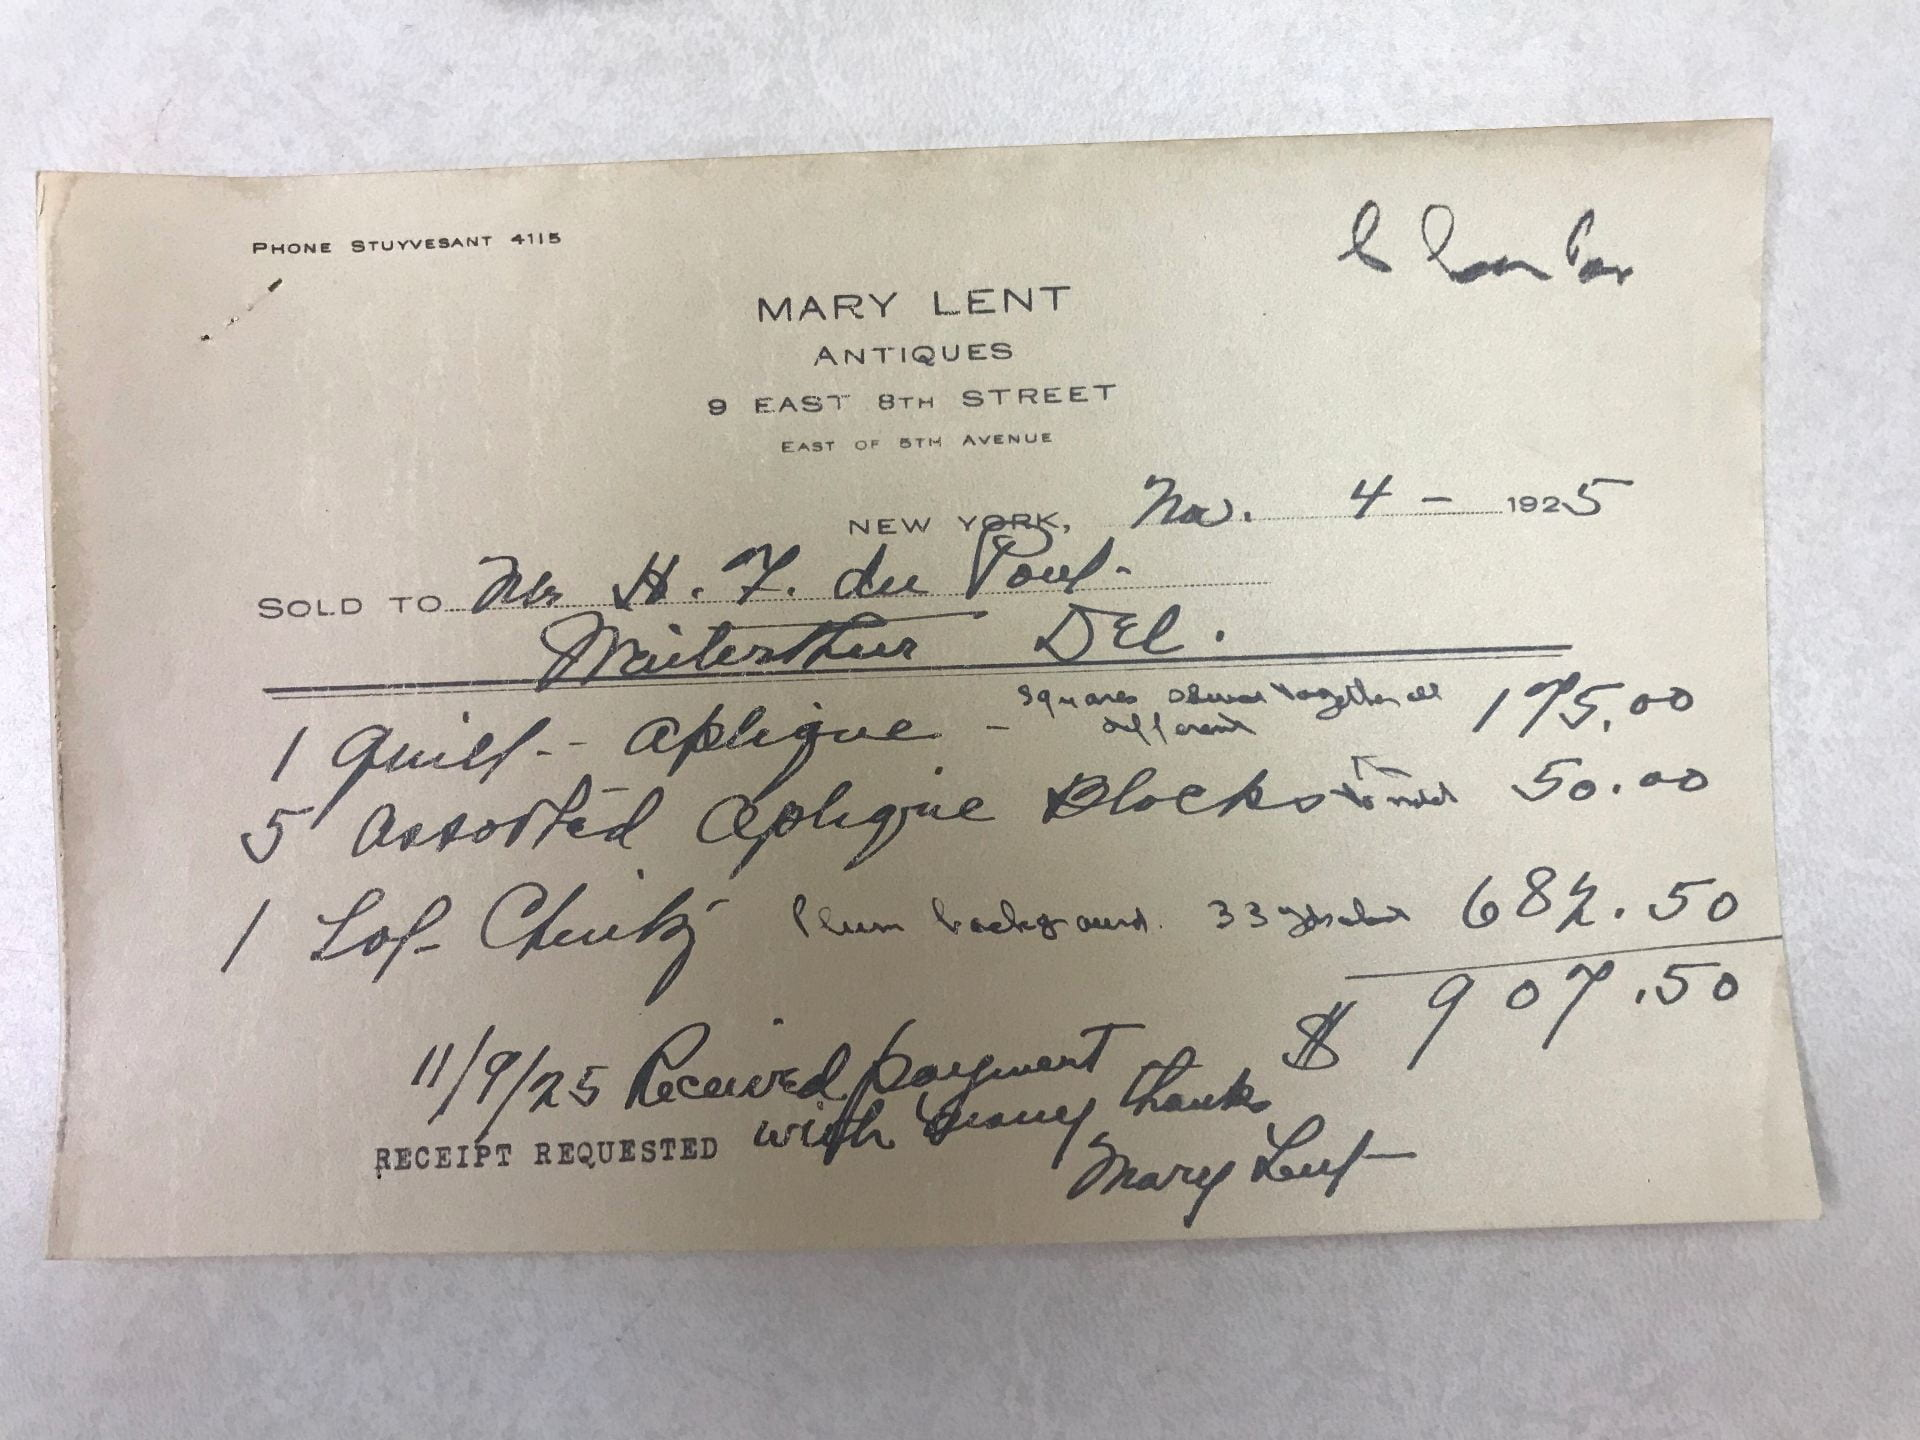 """A piece of paper with handwriting for a bill of sale from Mary Lent to H.F. du Pont that reads """"1 quilt – aplique, all squares sewn together all different"""" and """"5 assorted aplique blocks to match"""" for $225.00."""